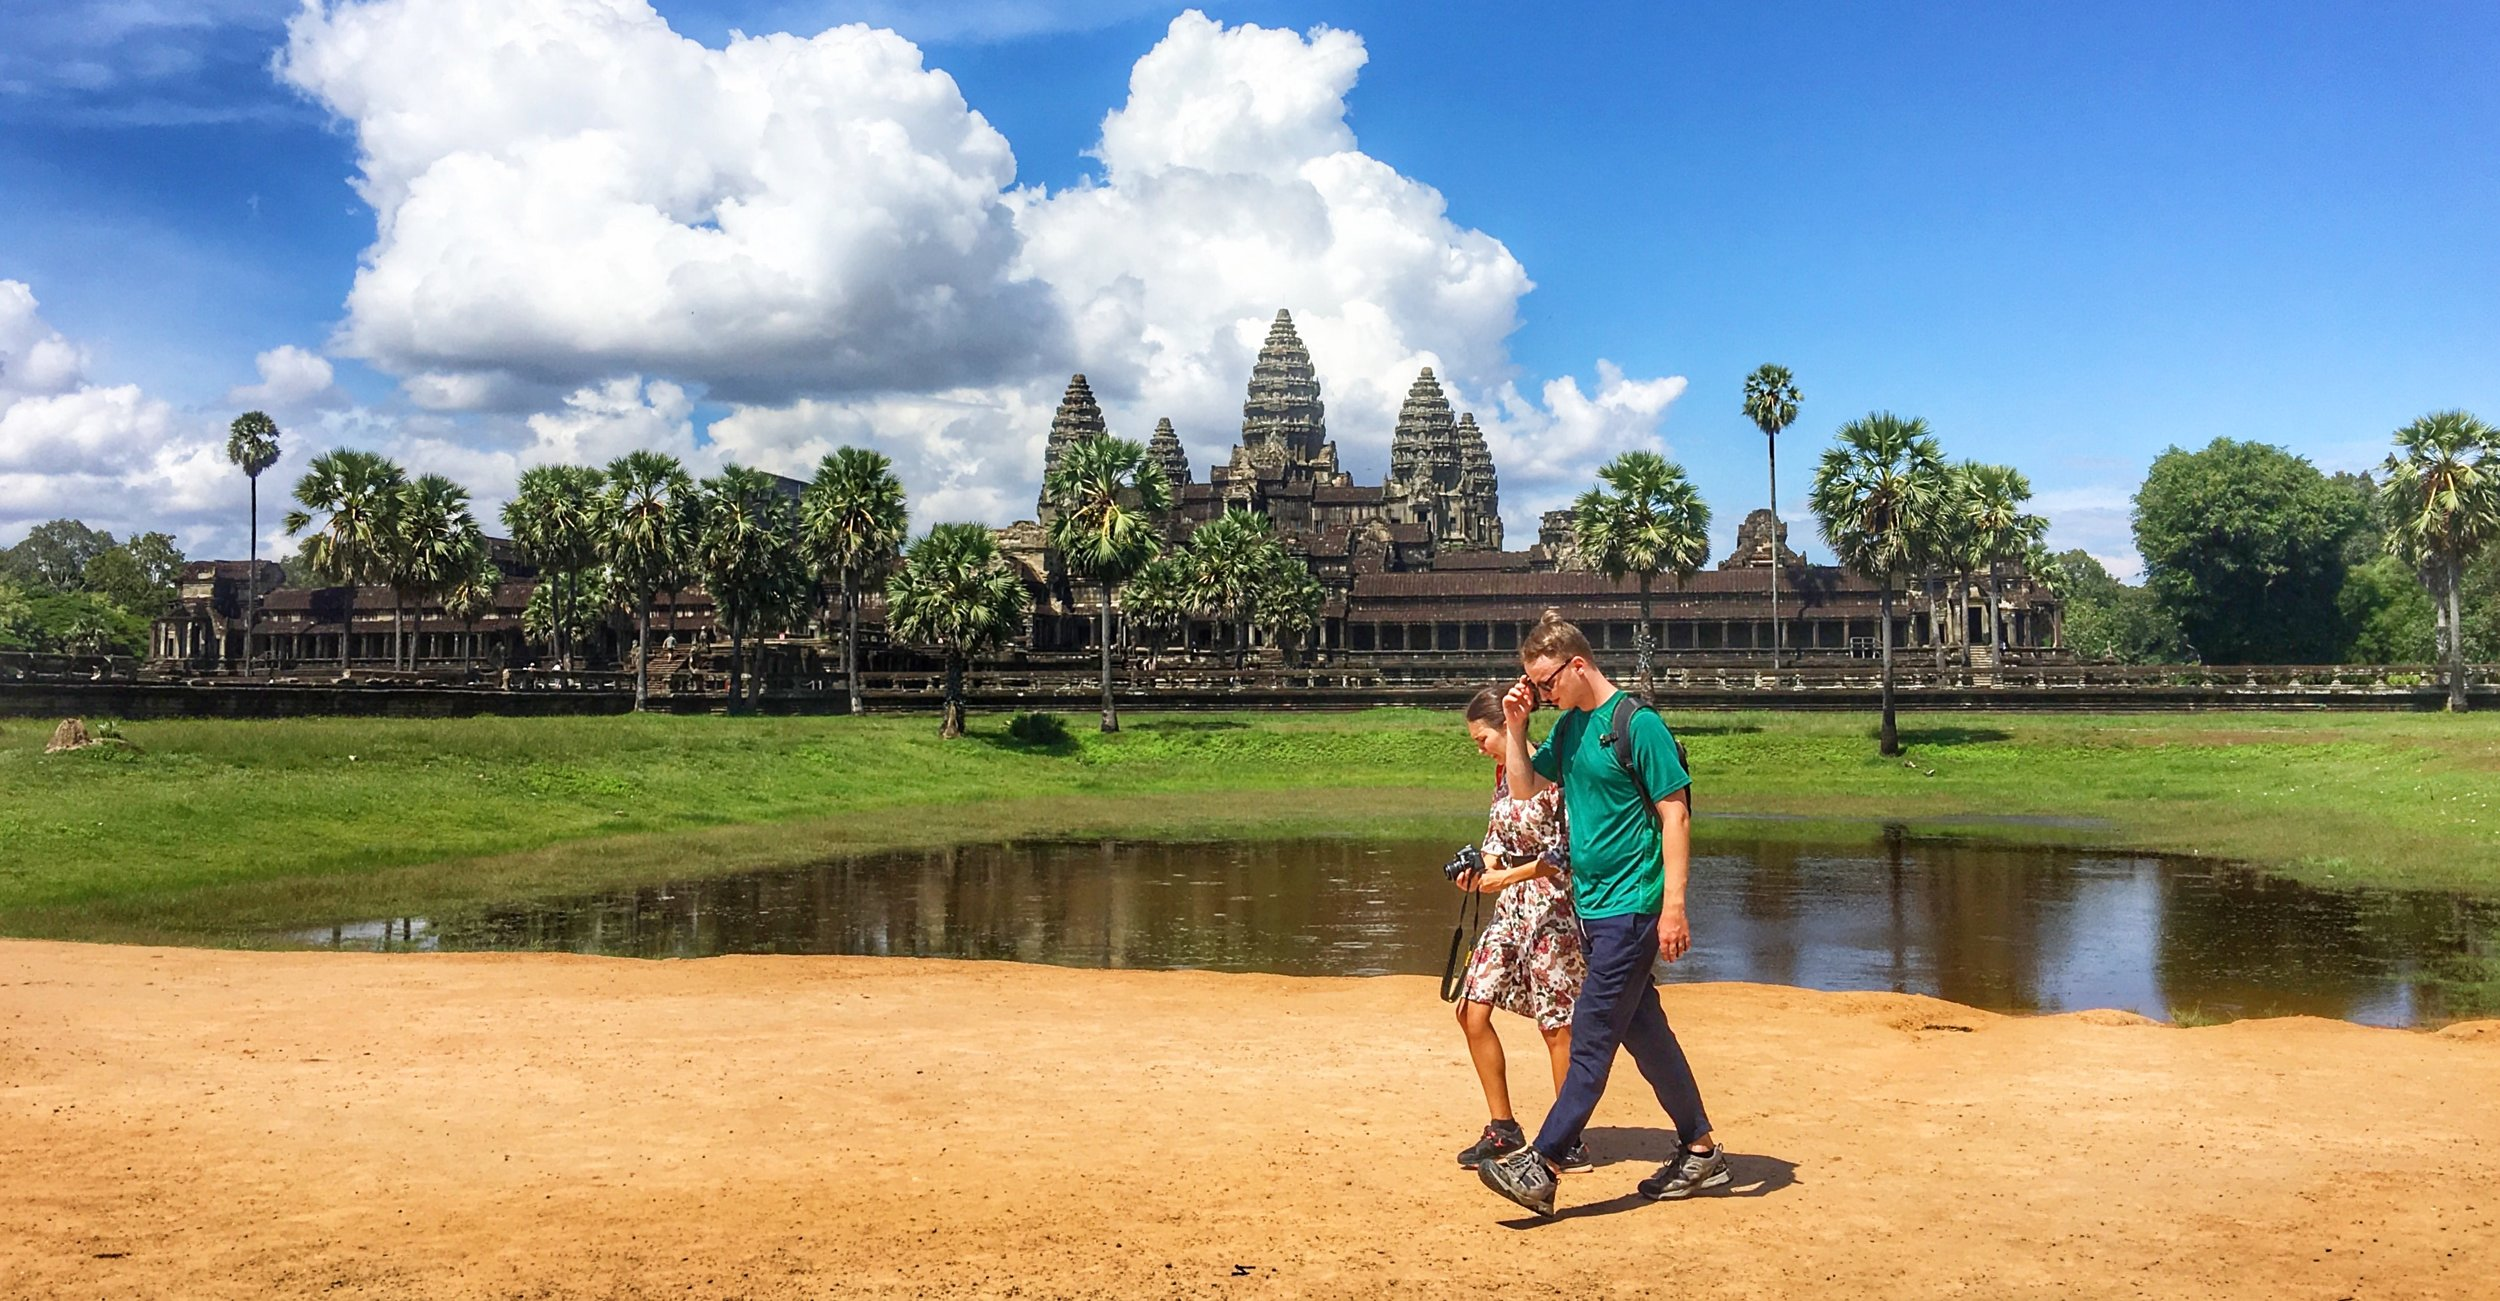 Avoiding crowds  at Angkor Wat   Learn more→